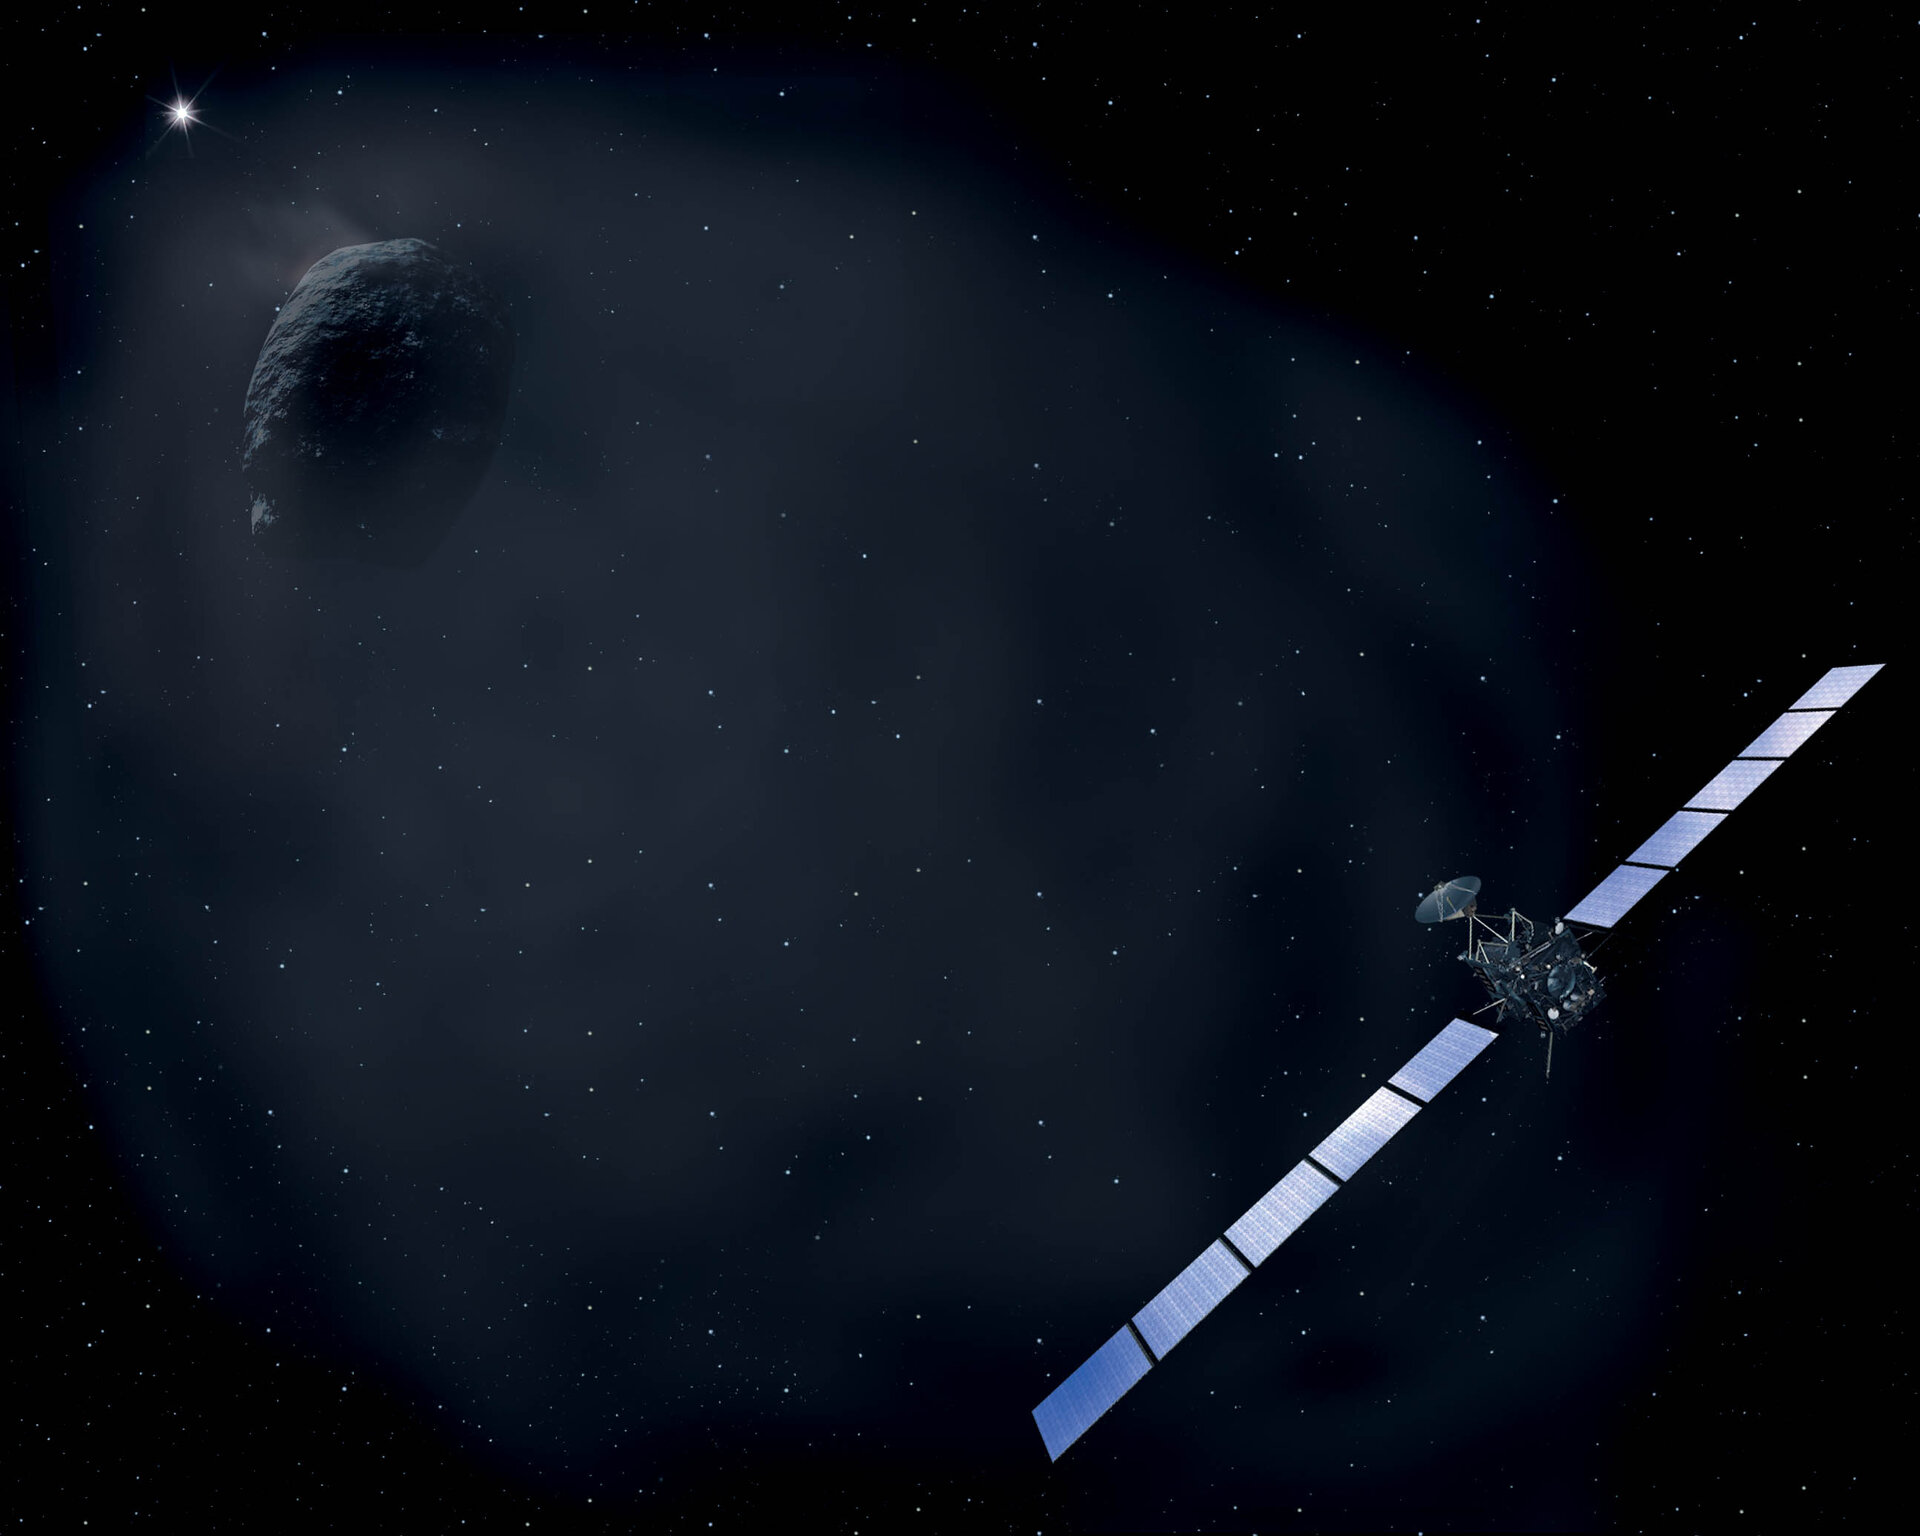 Rosetta's ultimate destination is Comet Churyumov-Gerasimenko